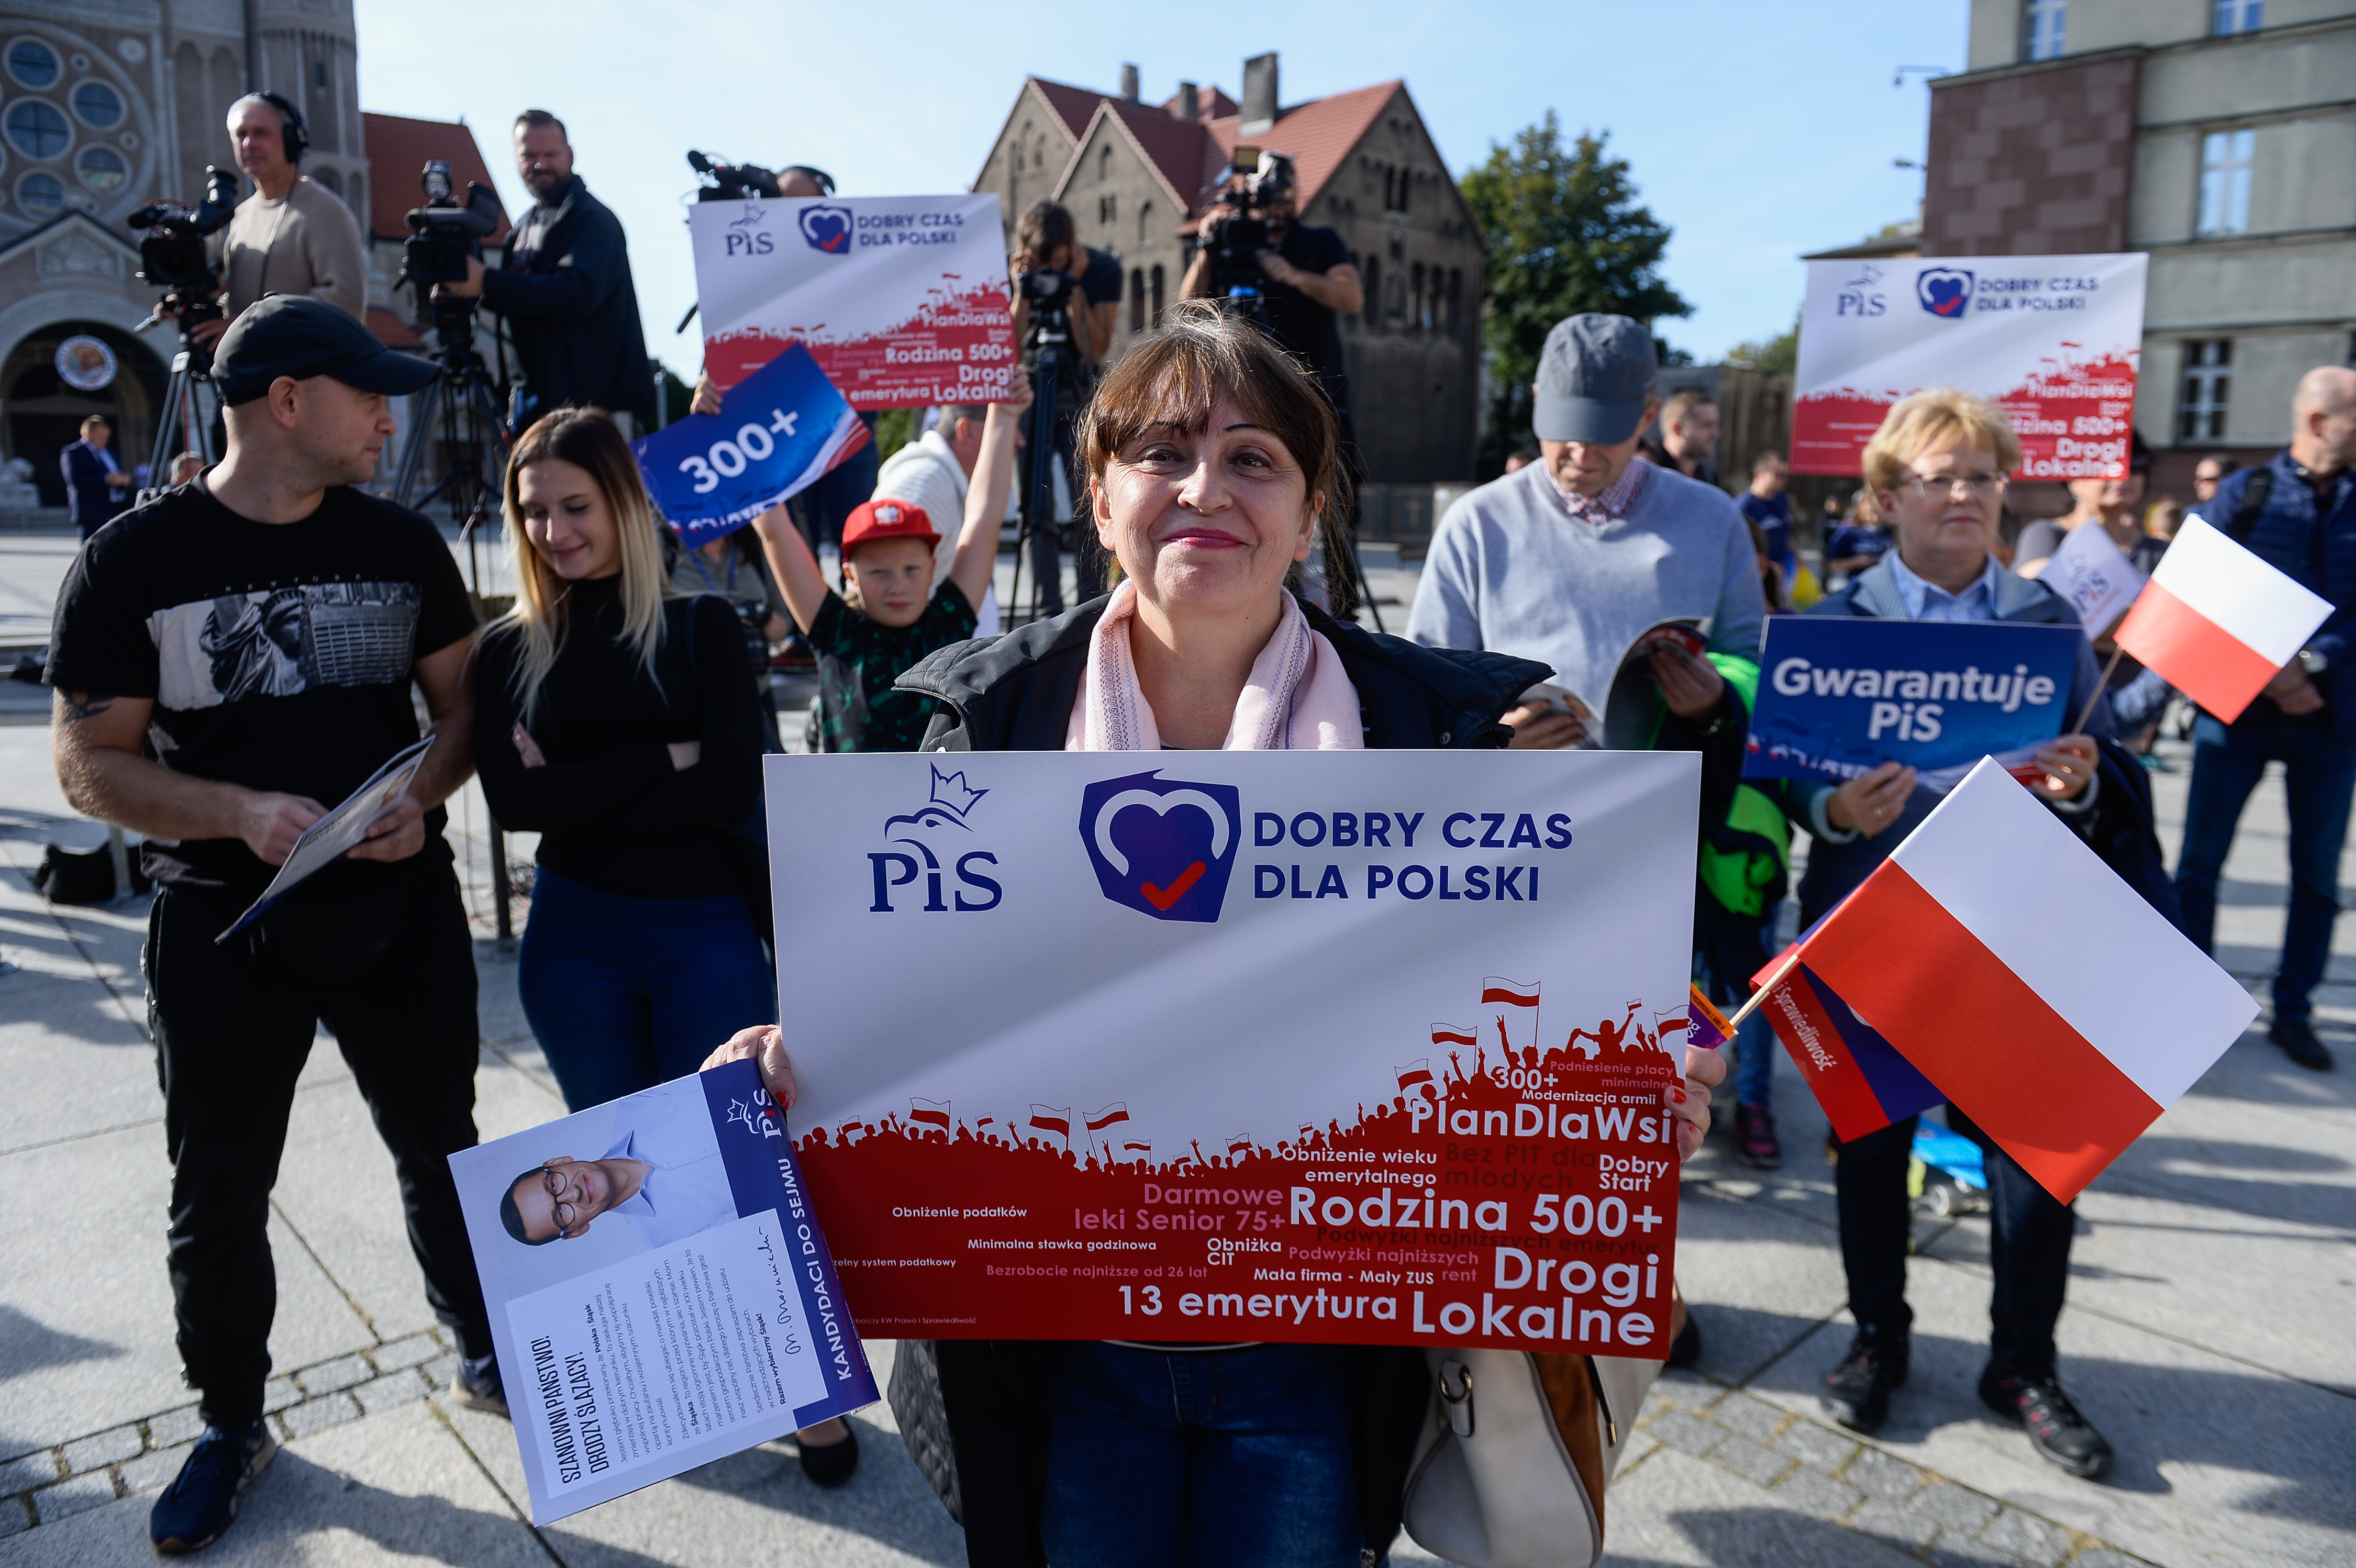 "RUDA SLANSKA, POLAND - SEPTEMBER 21: A woman holds a Law and Justice banner as the Polish Prime Minister, Mateusz Morawiecki delivers a speech during a campaign event on September, 21 in Ruda Slanska, Poland. The ruling Law and Justice Party, a conservative right-wing party with close ties to the Polish Church, within Poland's general election less than a month away, as been campaigning against LGBT equal rights and has announced several proposal packages promising changes on social spending, journalism laws, the prosecution of parliamentarians, ""500+"" child program to cover all children, a bonus payment for retirees exempting workers among others. (Photo by Omar Marques/Getty Images)"